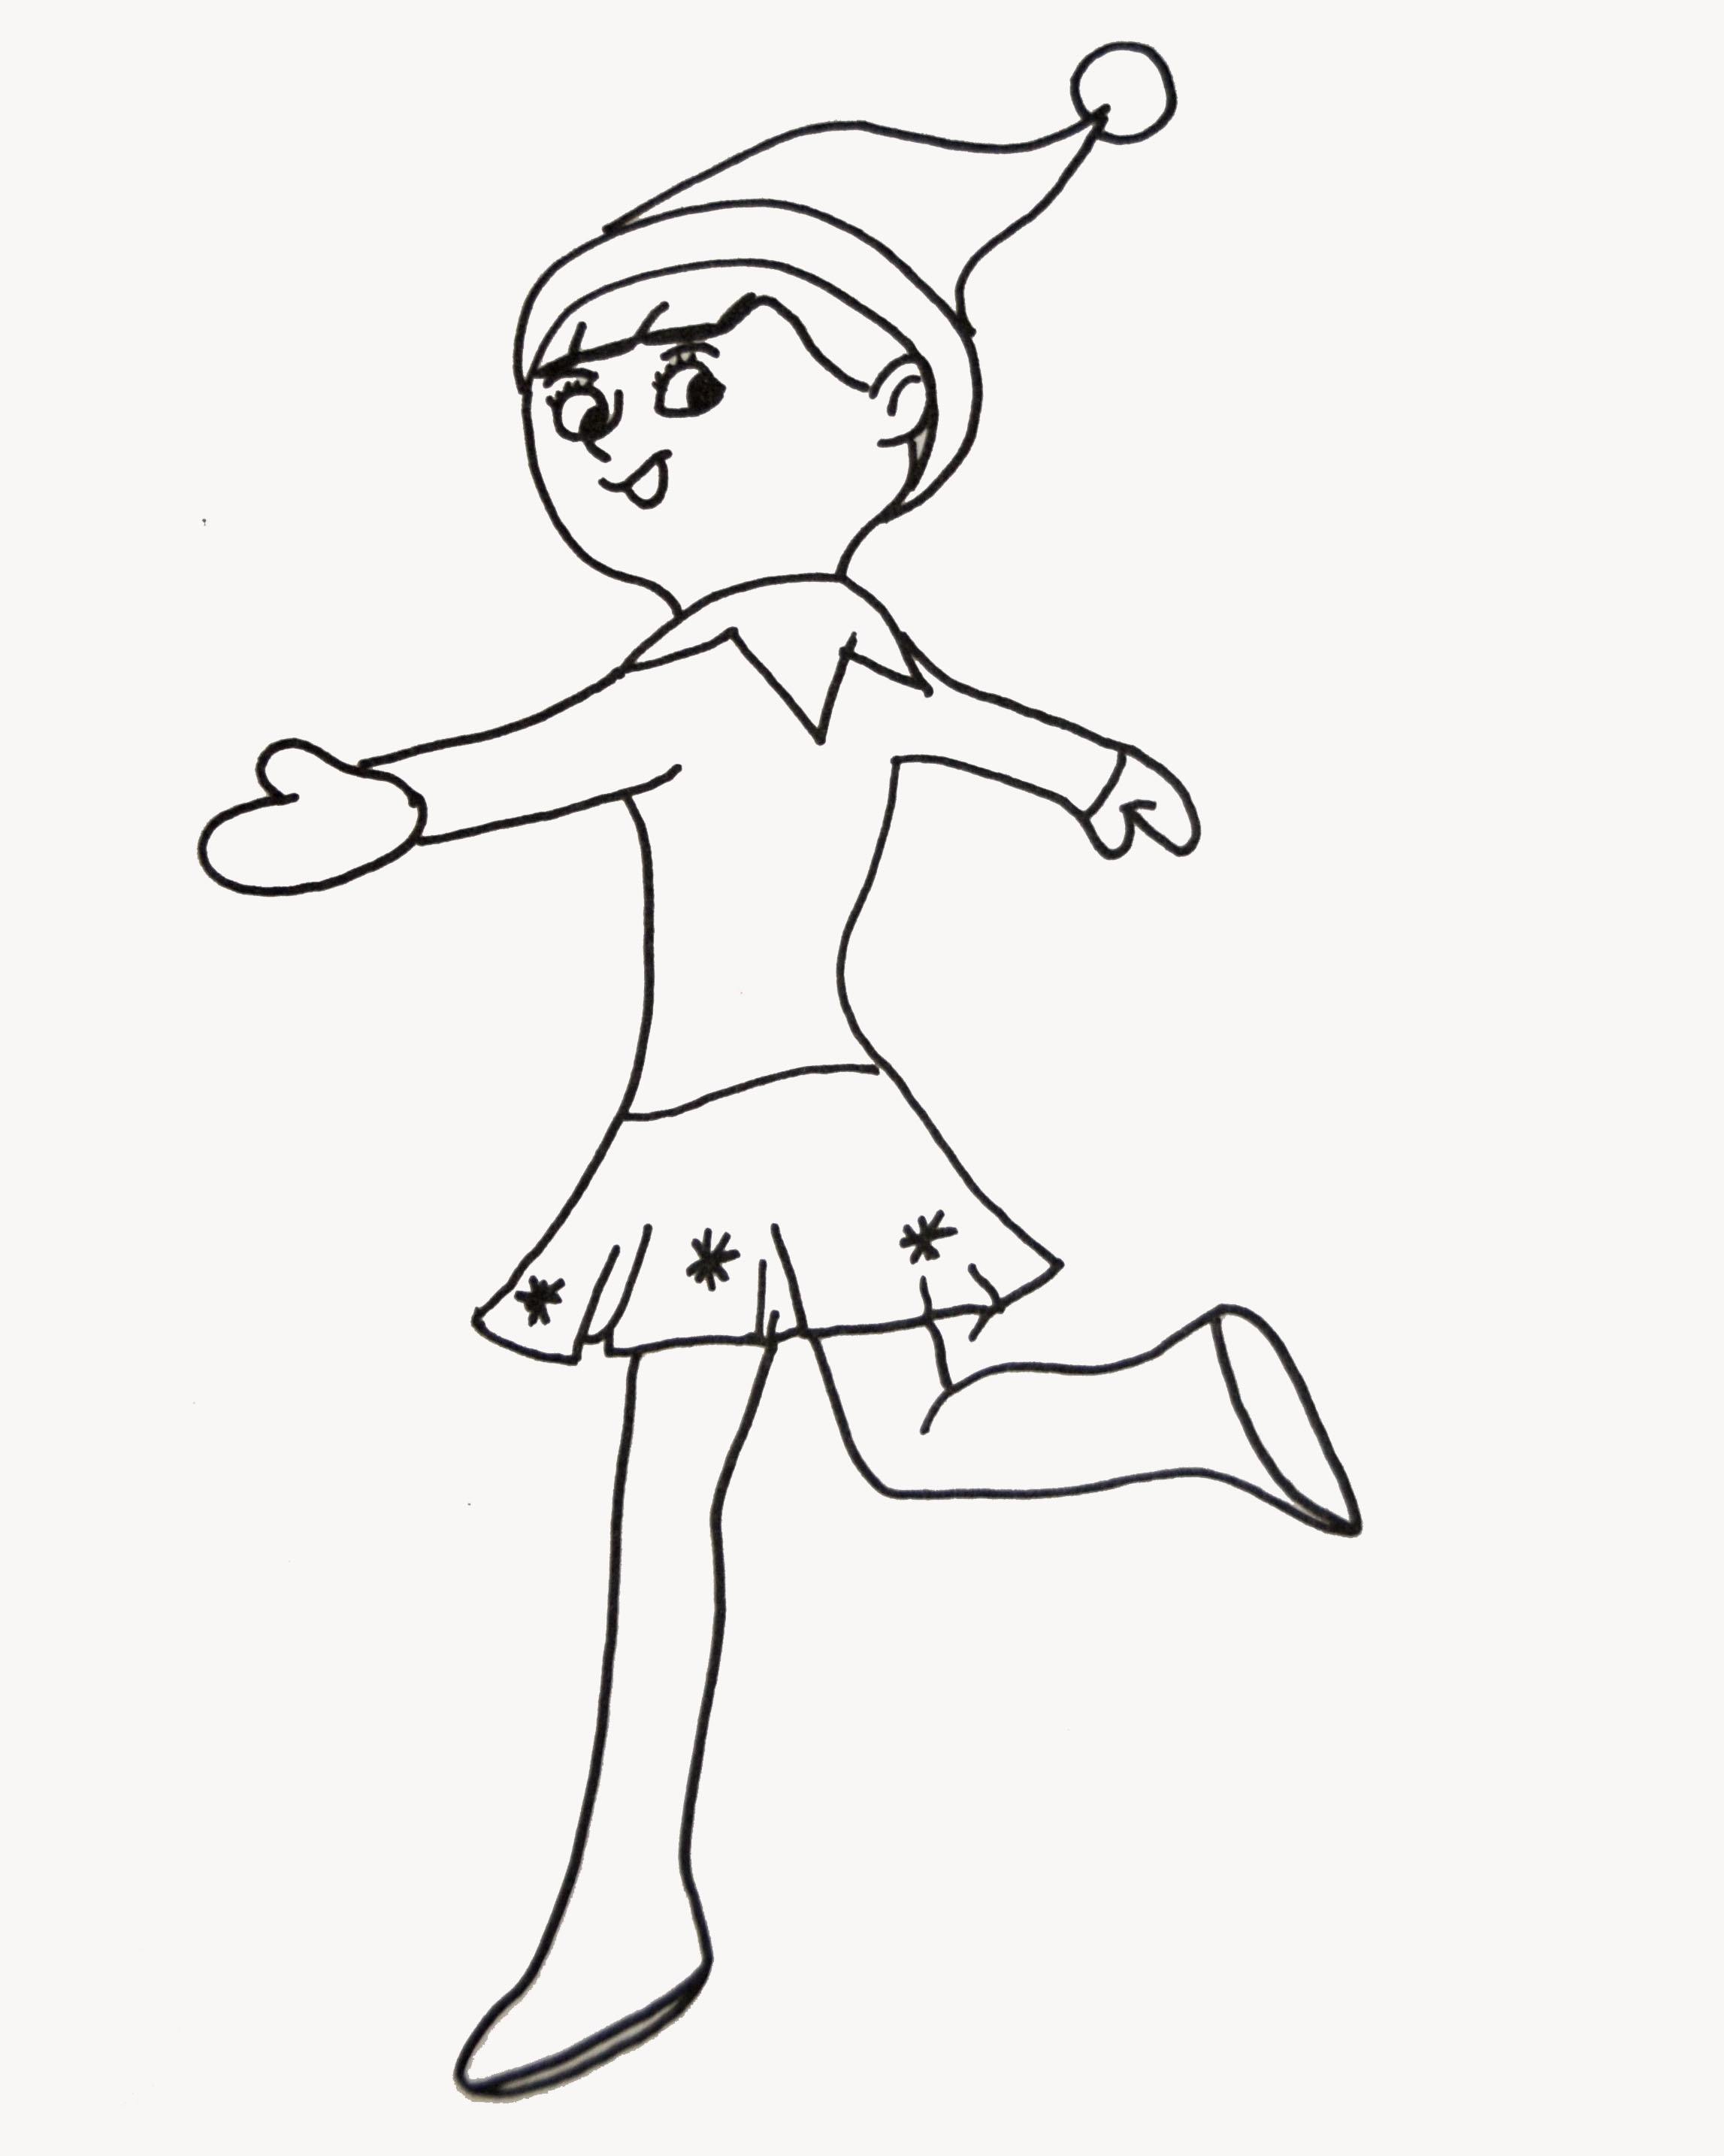 photo regarding Elf on the Shelf Printable Coloring Pages identify Elf Upon The Shelf Coloring Web pages Elf Upon The Shelf Coloring